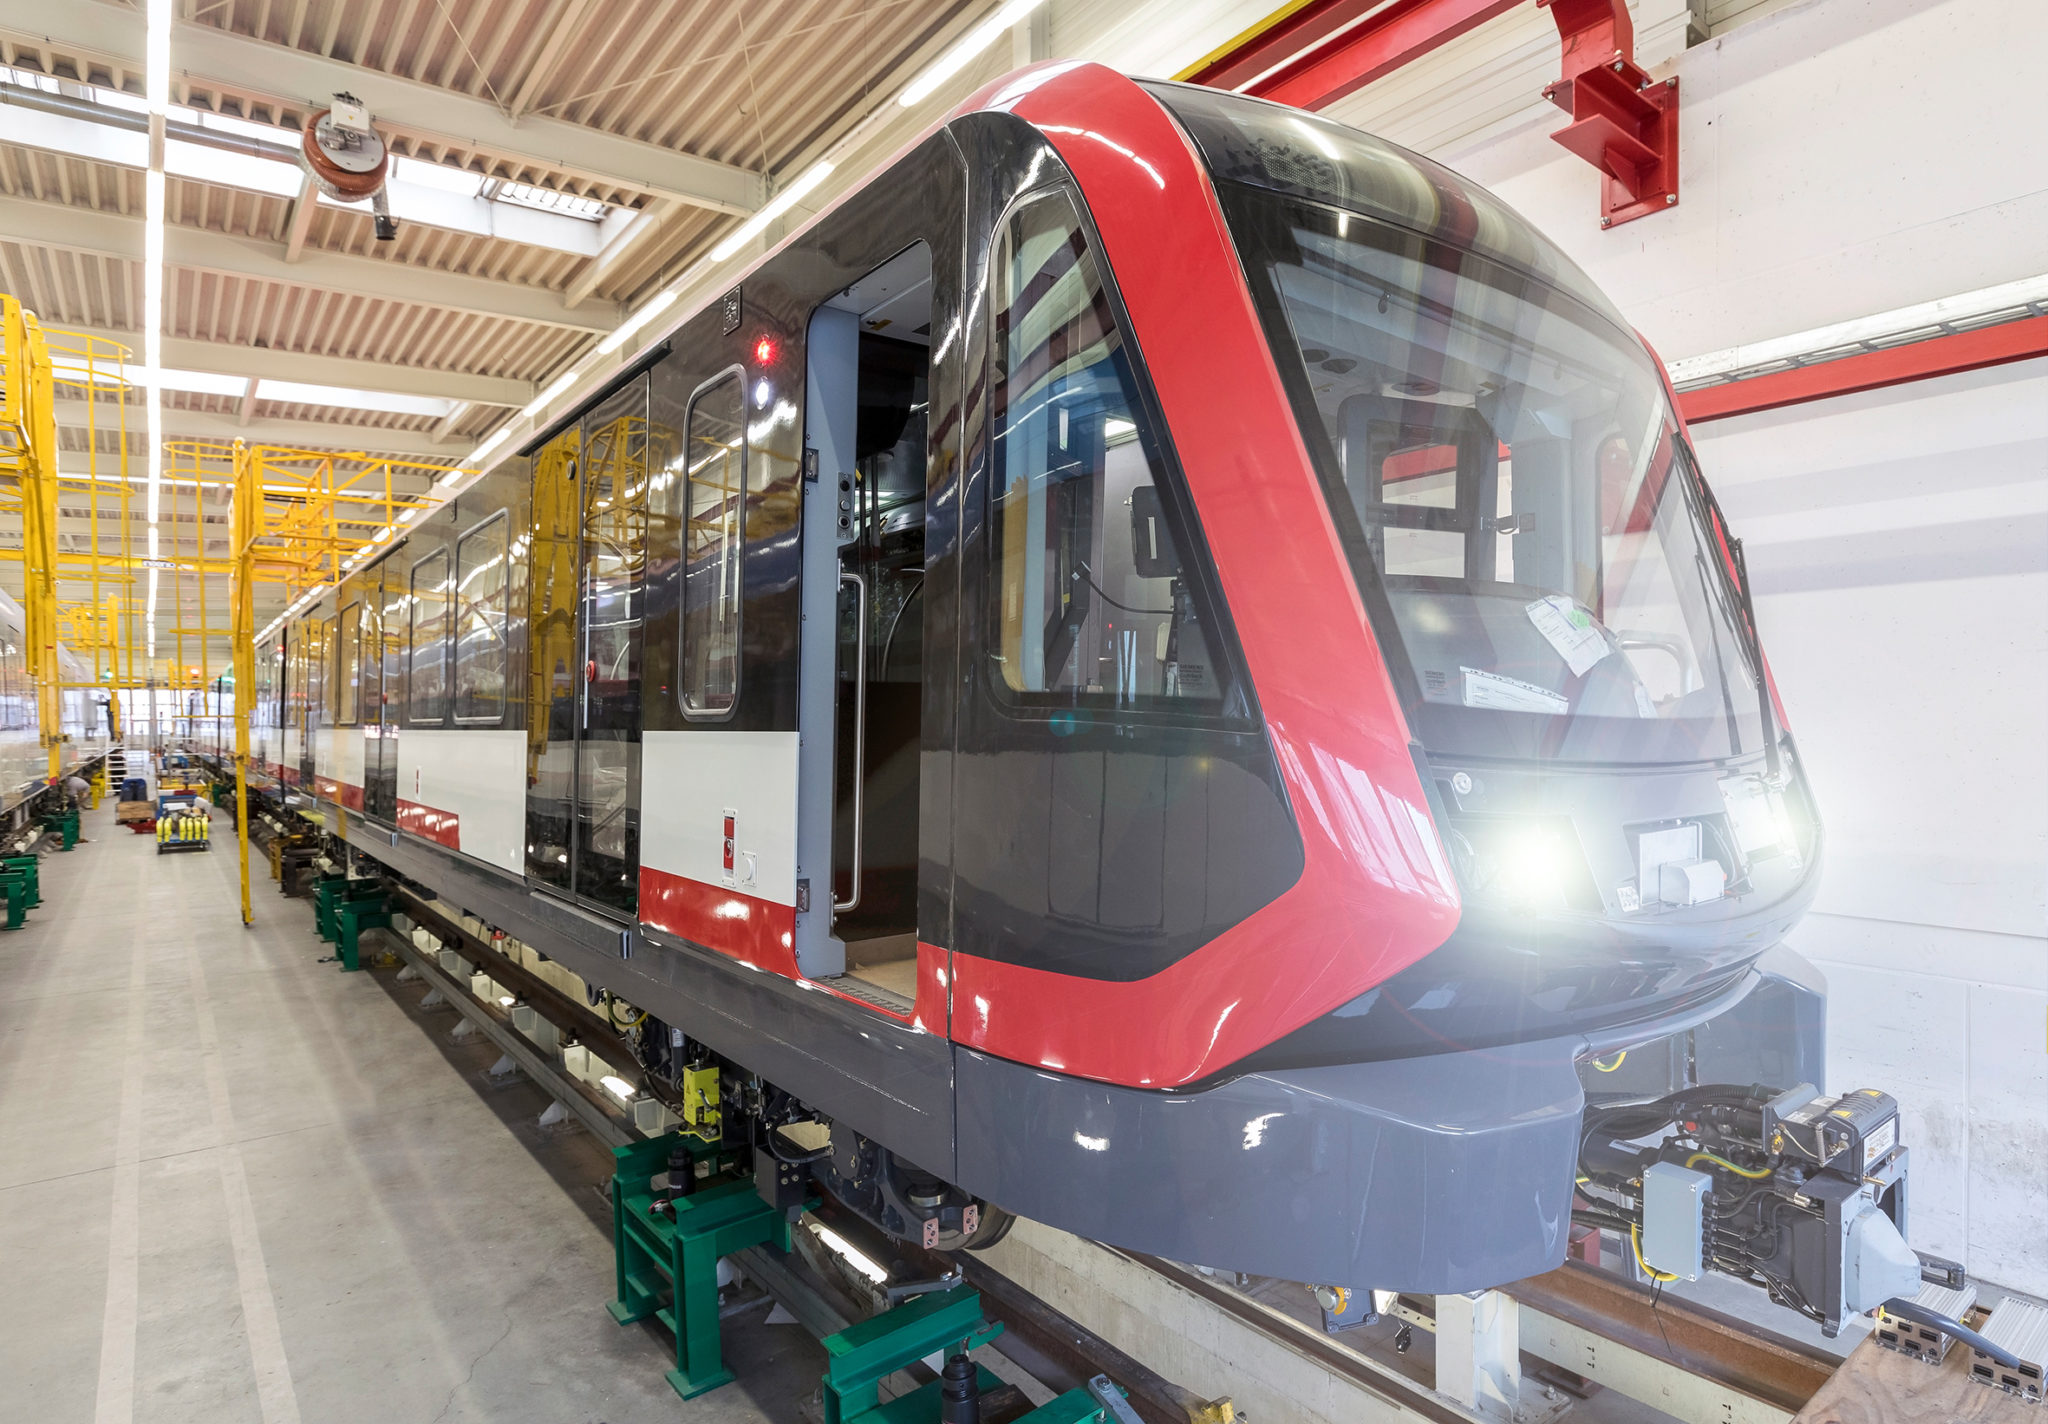 Siemens G1 metro trains for Nuremberg